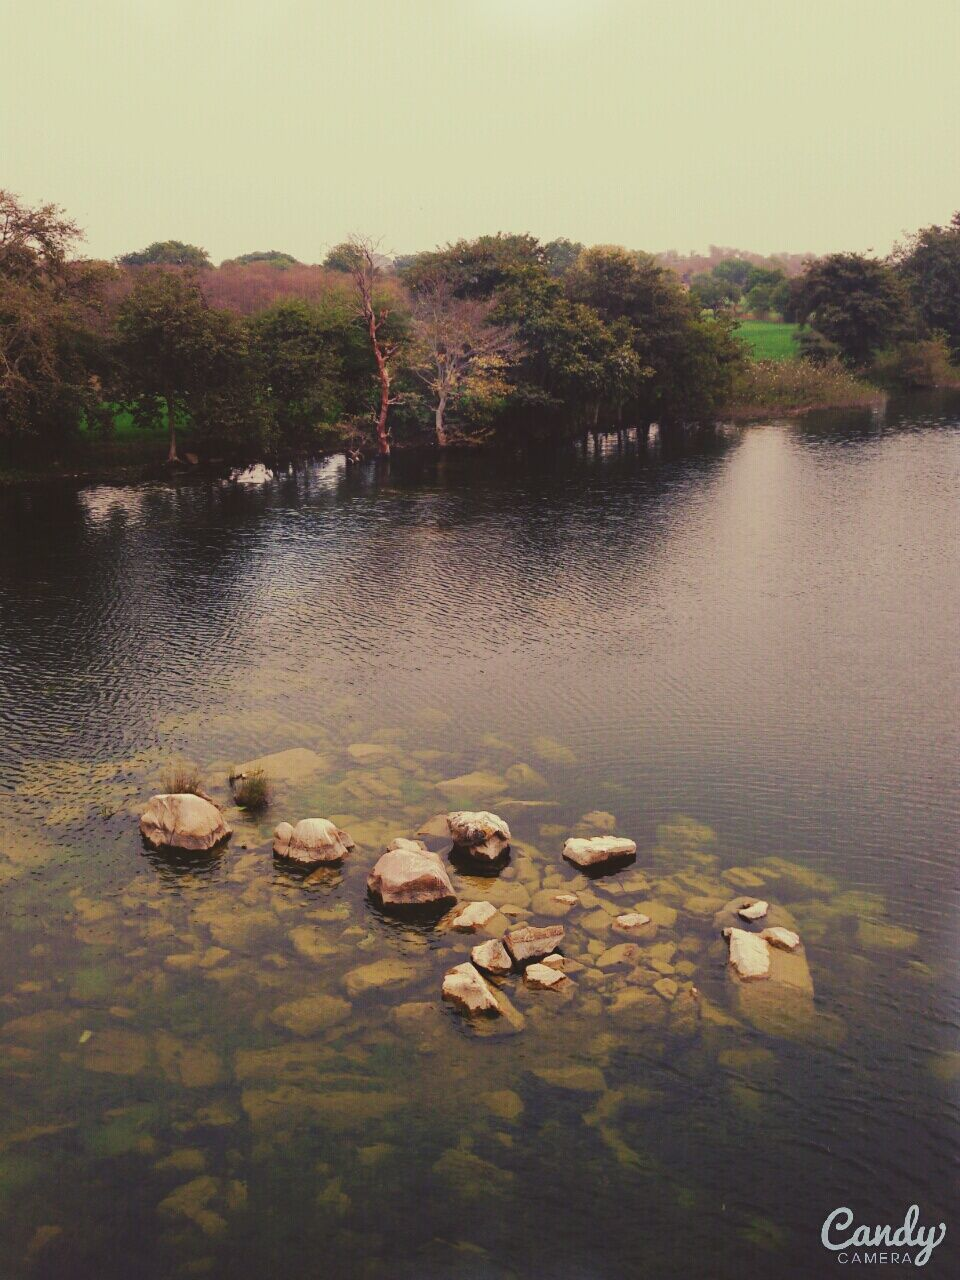 water, lake, nature, no people, tree, tranquility, day, outdoors, waterfront, beauty in nature, scenics, animal themes, sky